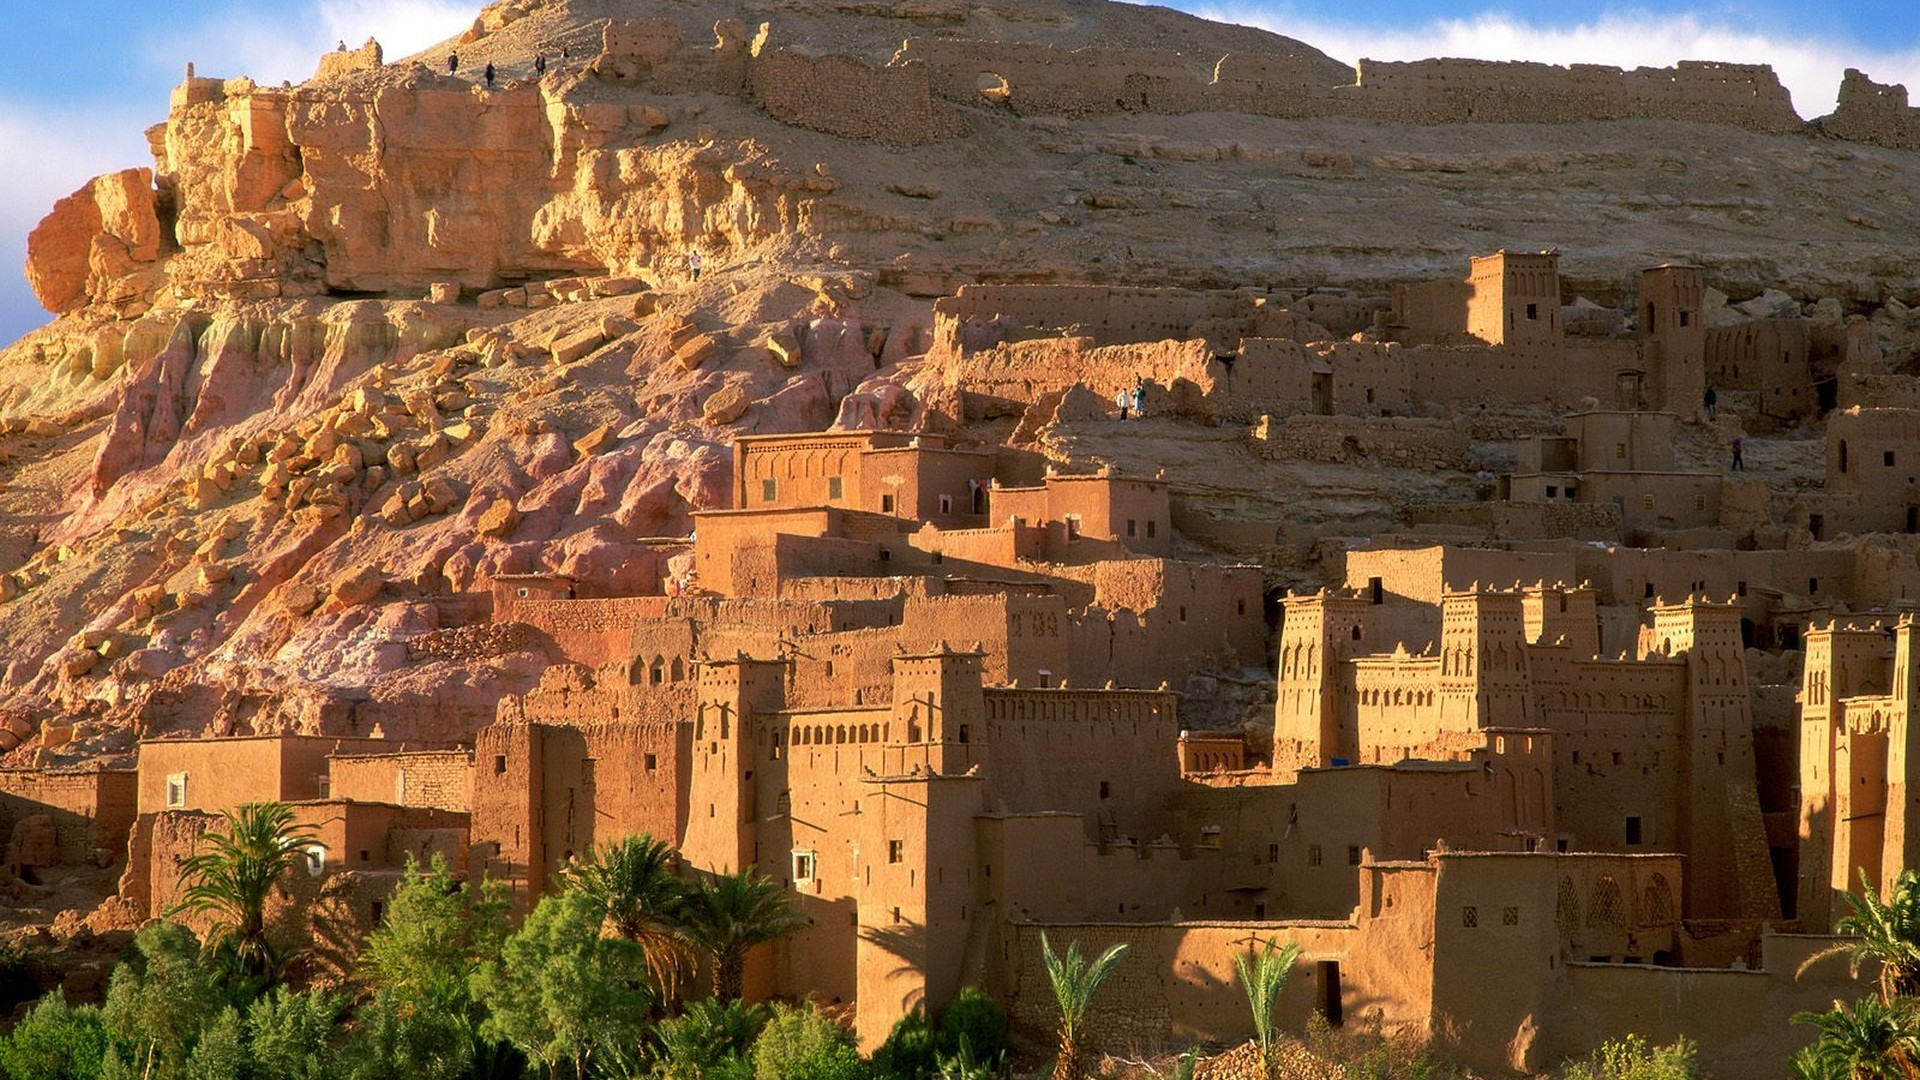 landscapes-ruins-old-architecture-rocks-buildings-Morocco-x-wallpaper-wp427038-1